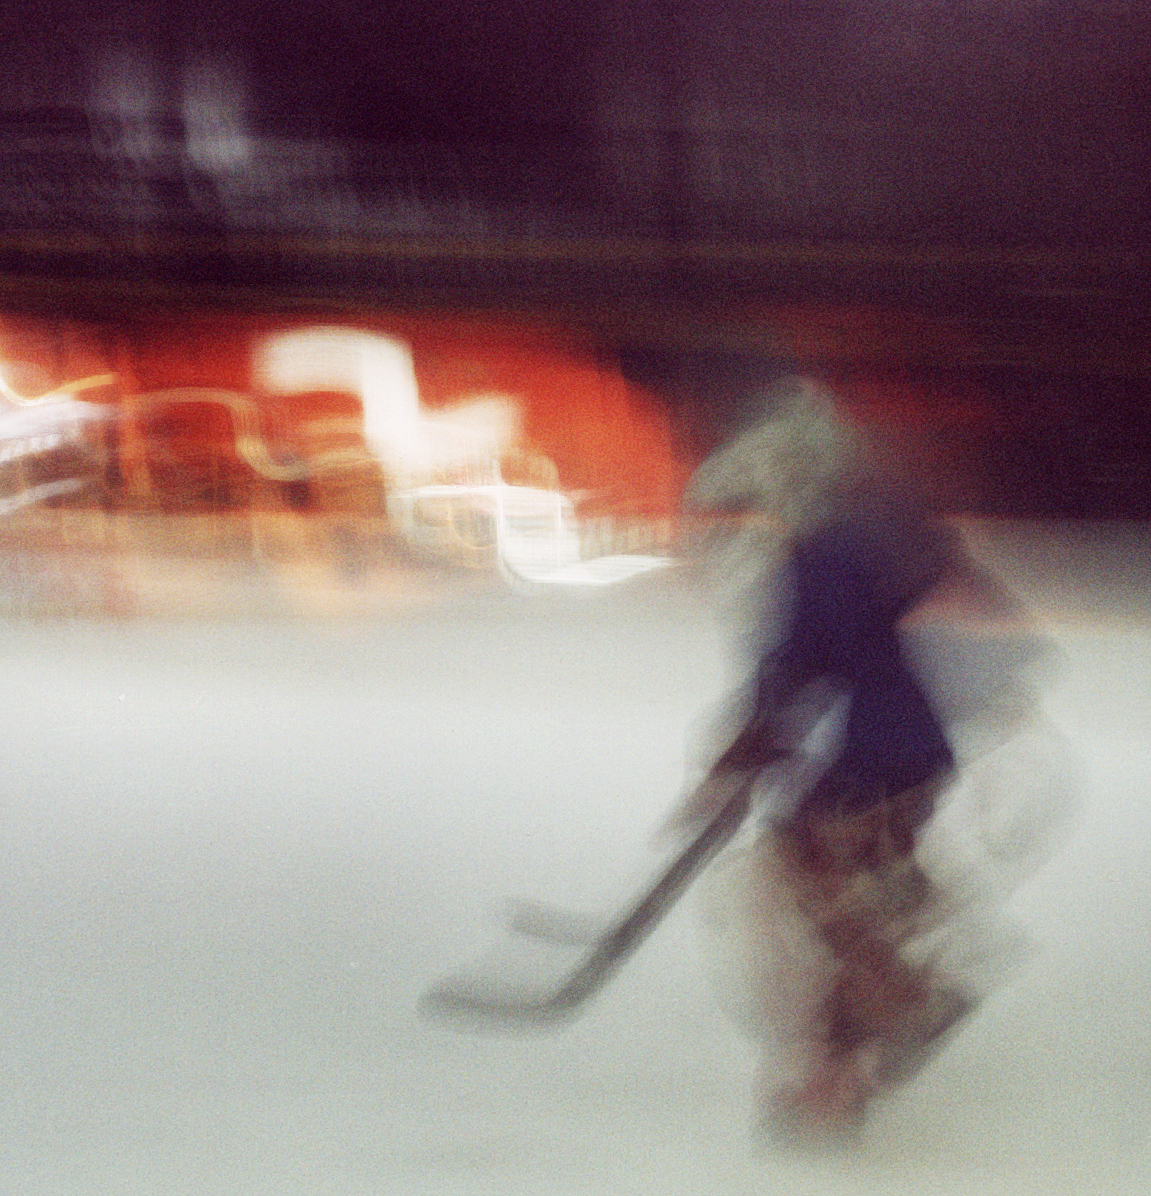 Motion Blur: Hokey player